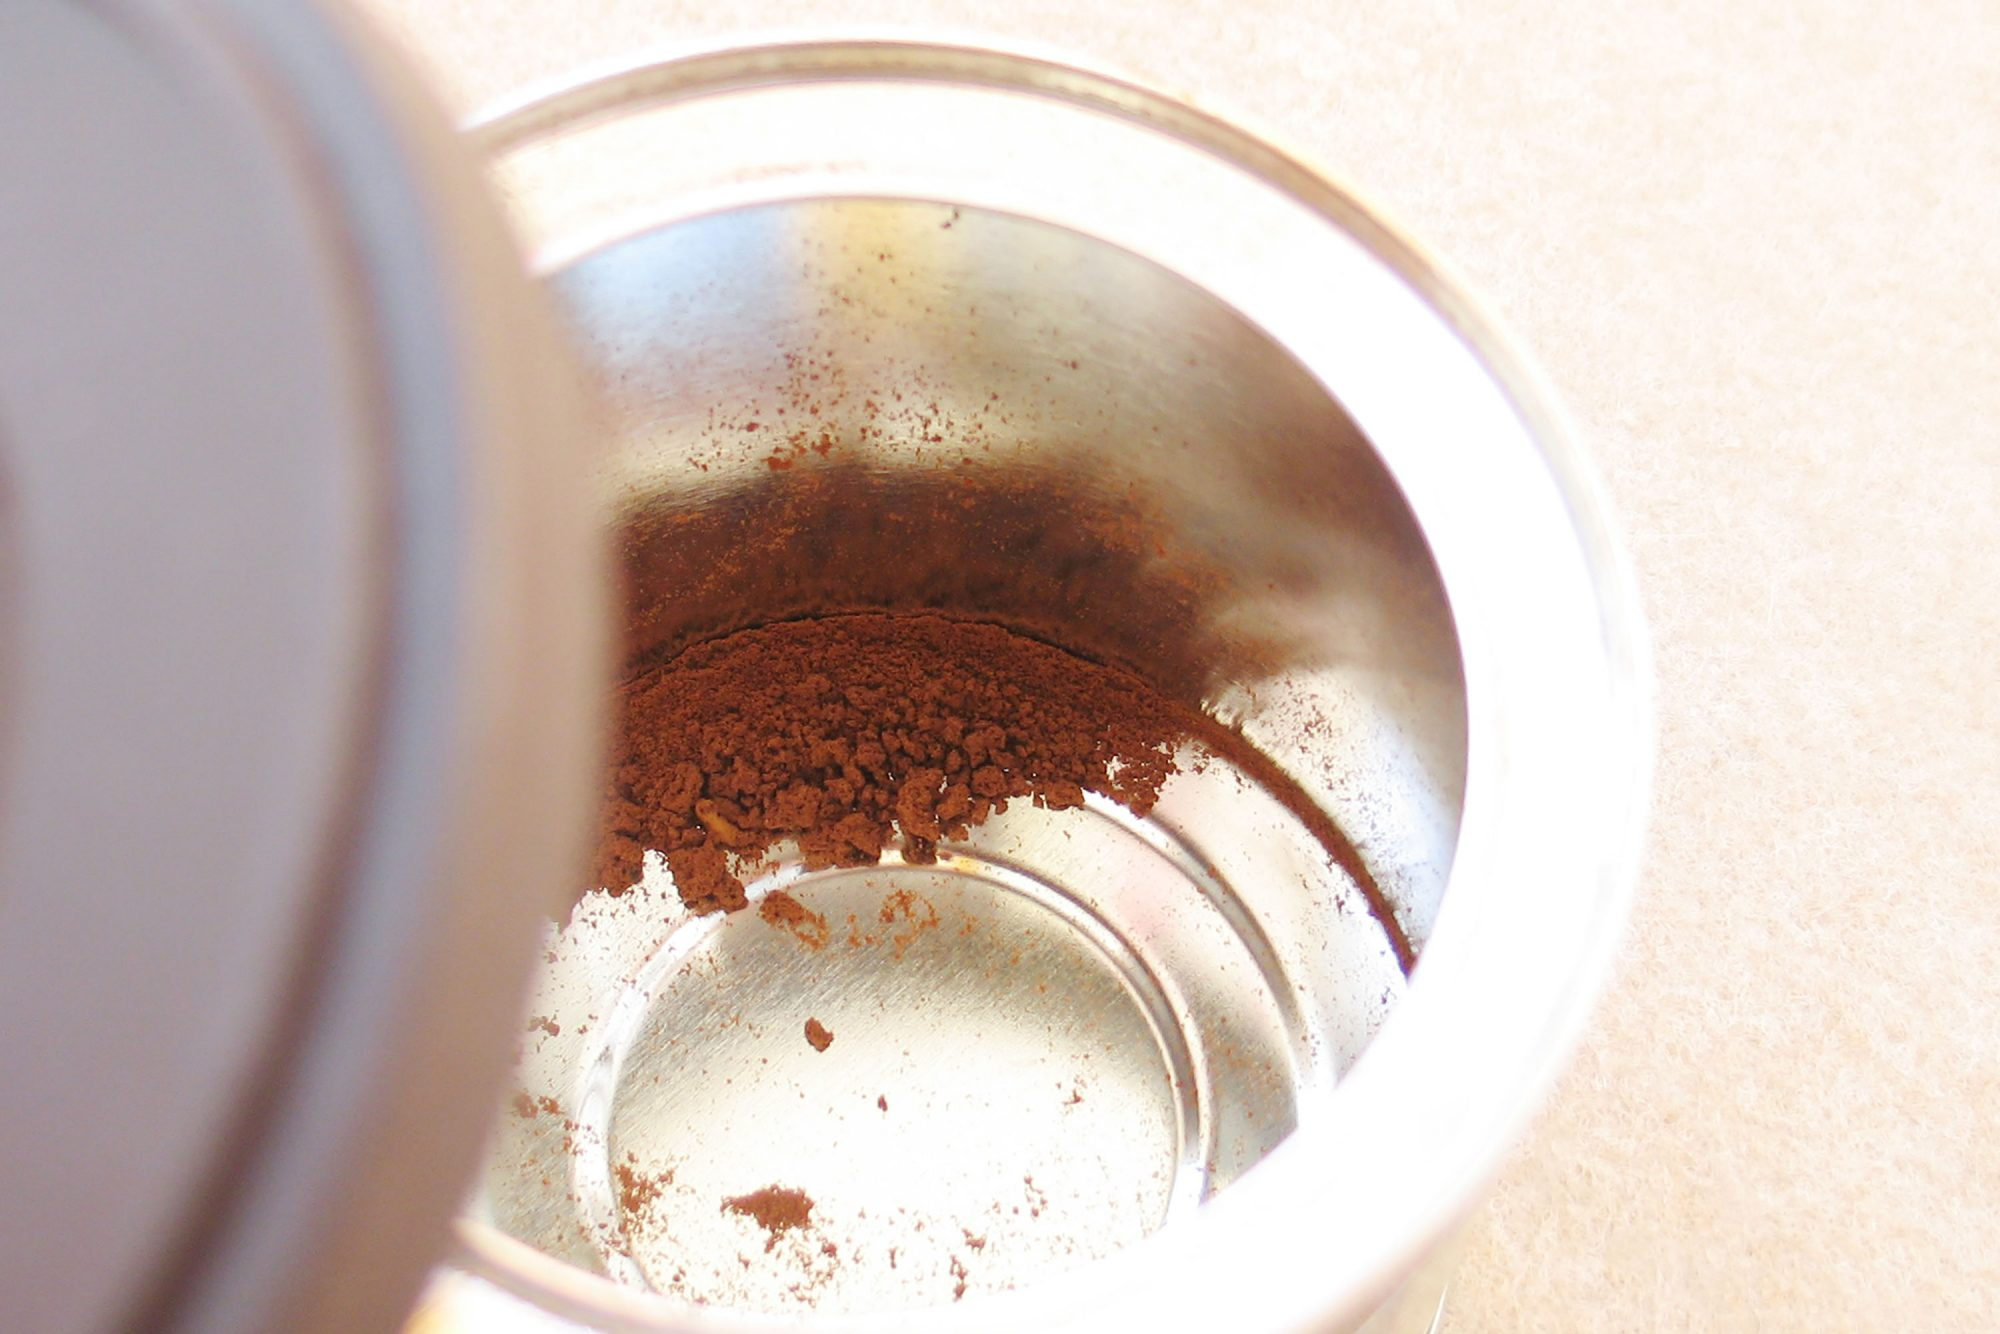 Empty coffee tin with grounds